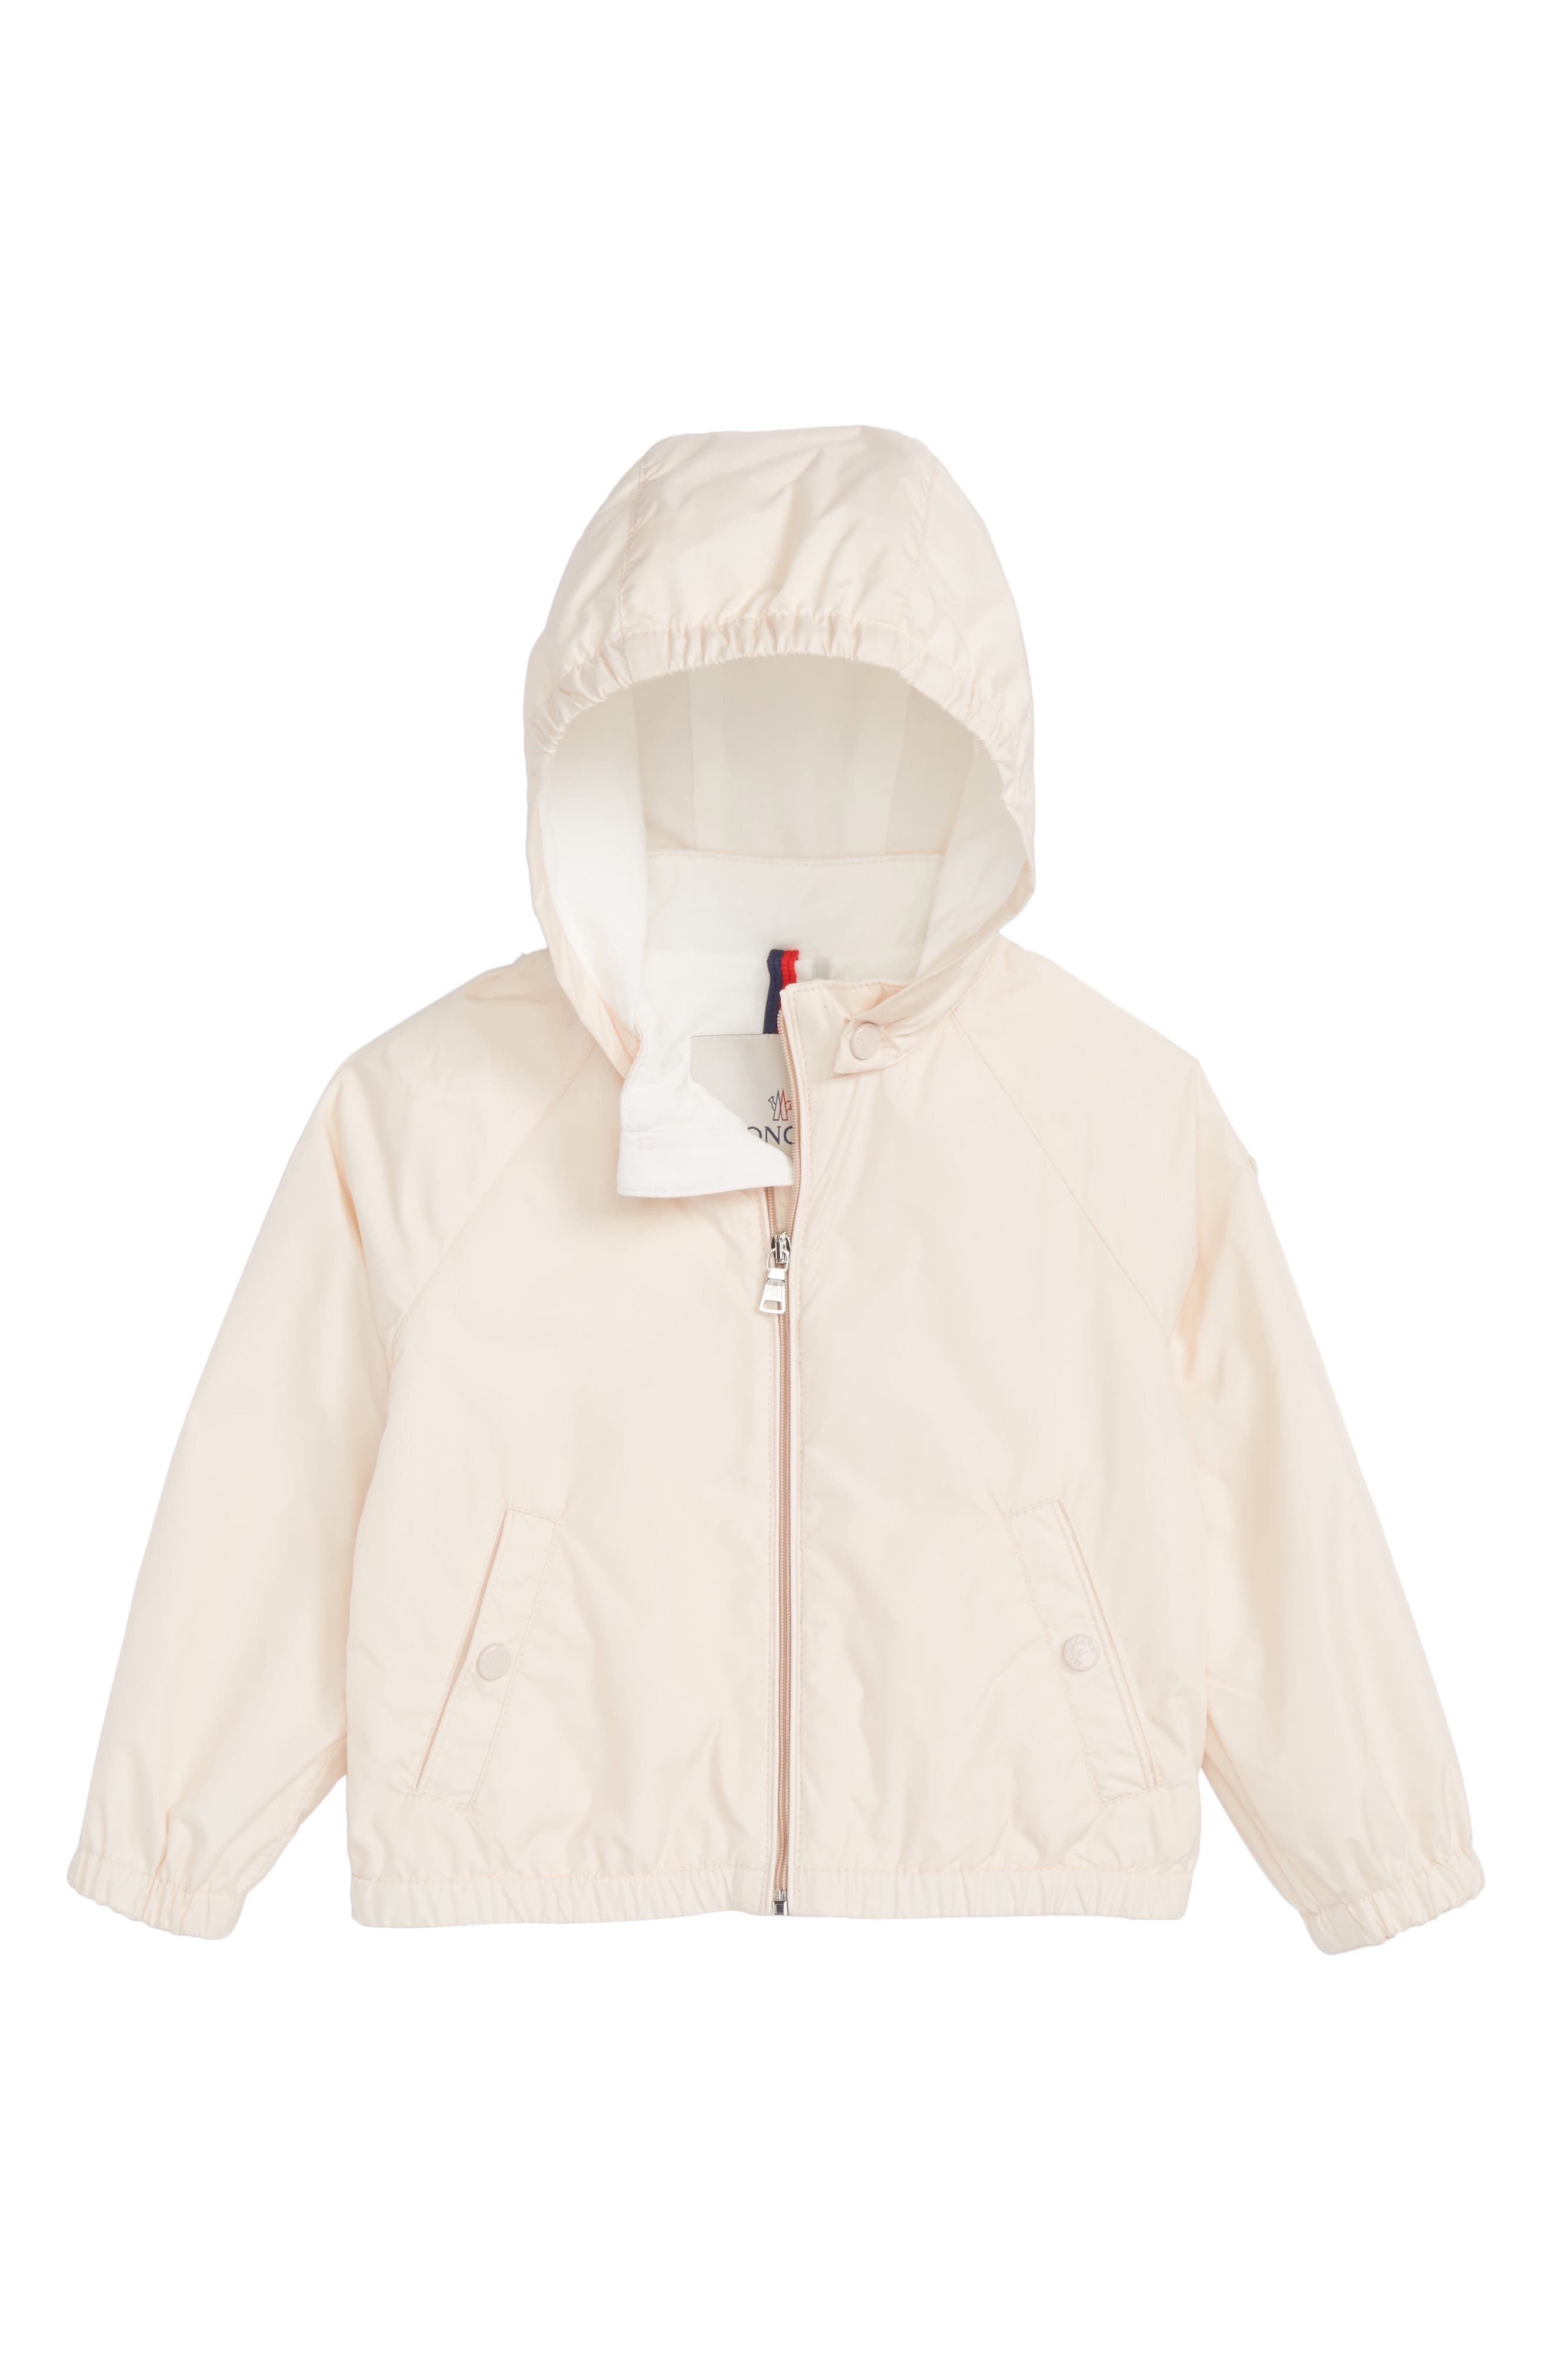 MONCLER, Eustache Jersey Lined Windbreaker, Main thumbnail 1, color, PINK